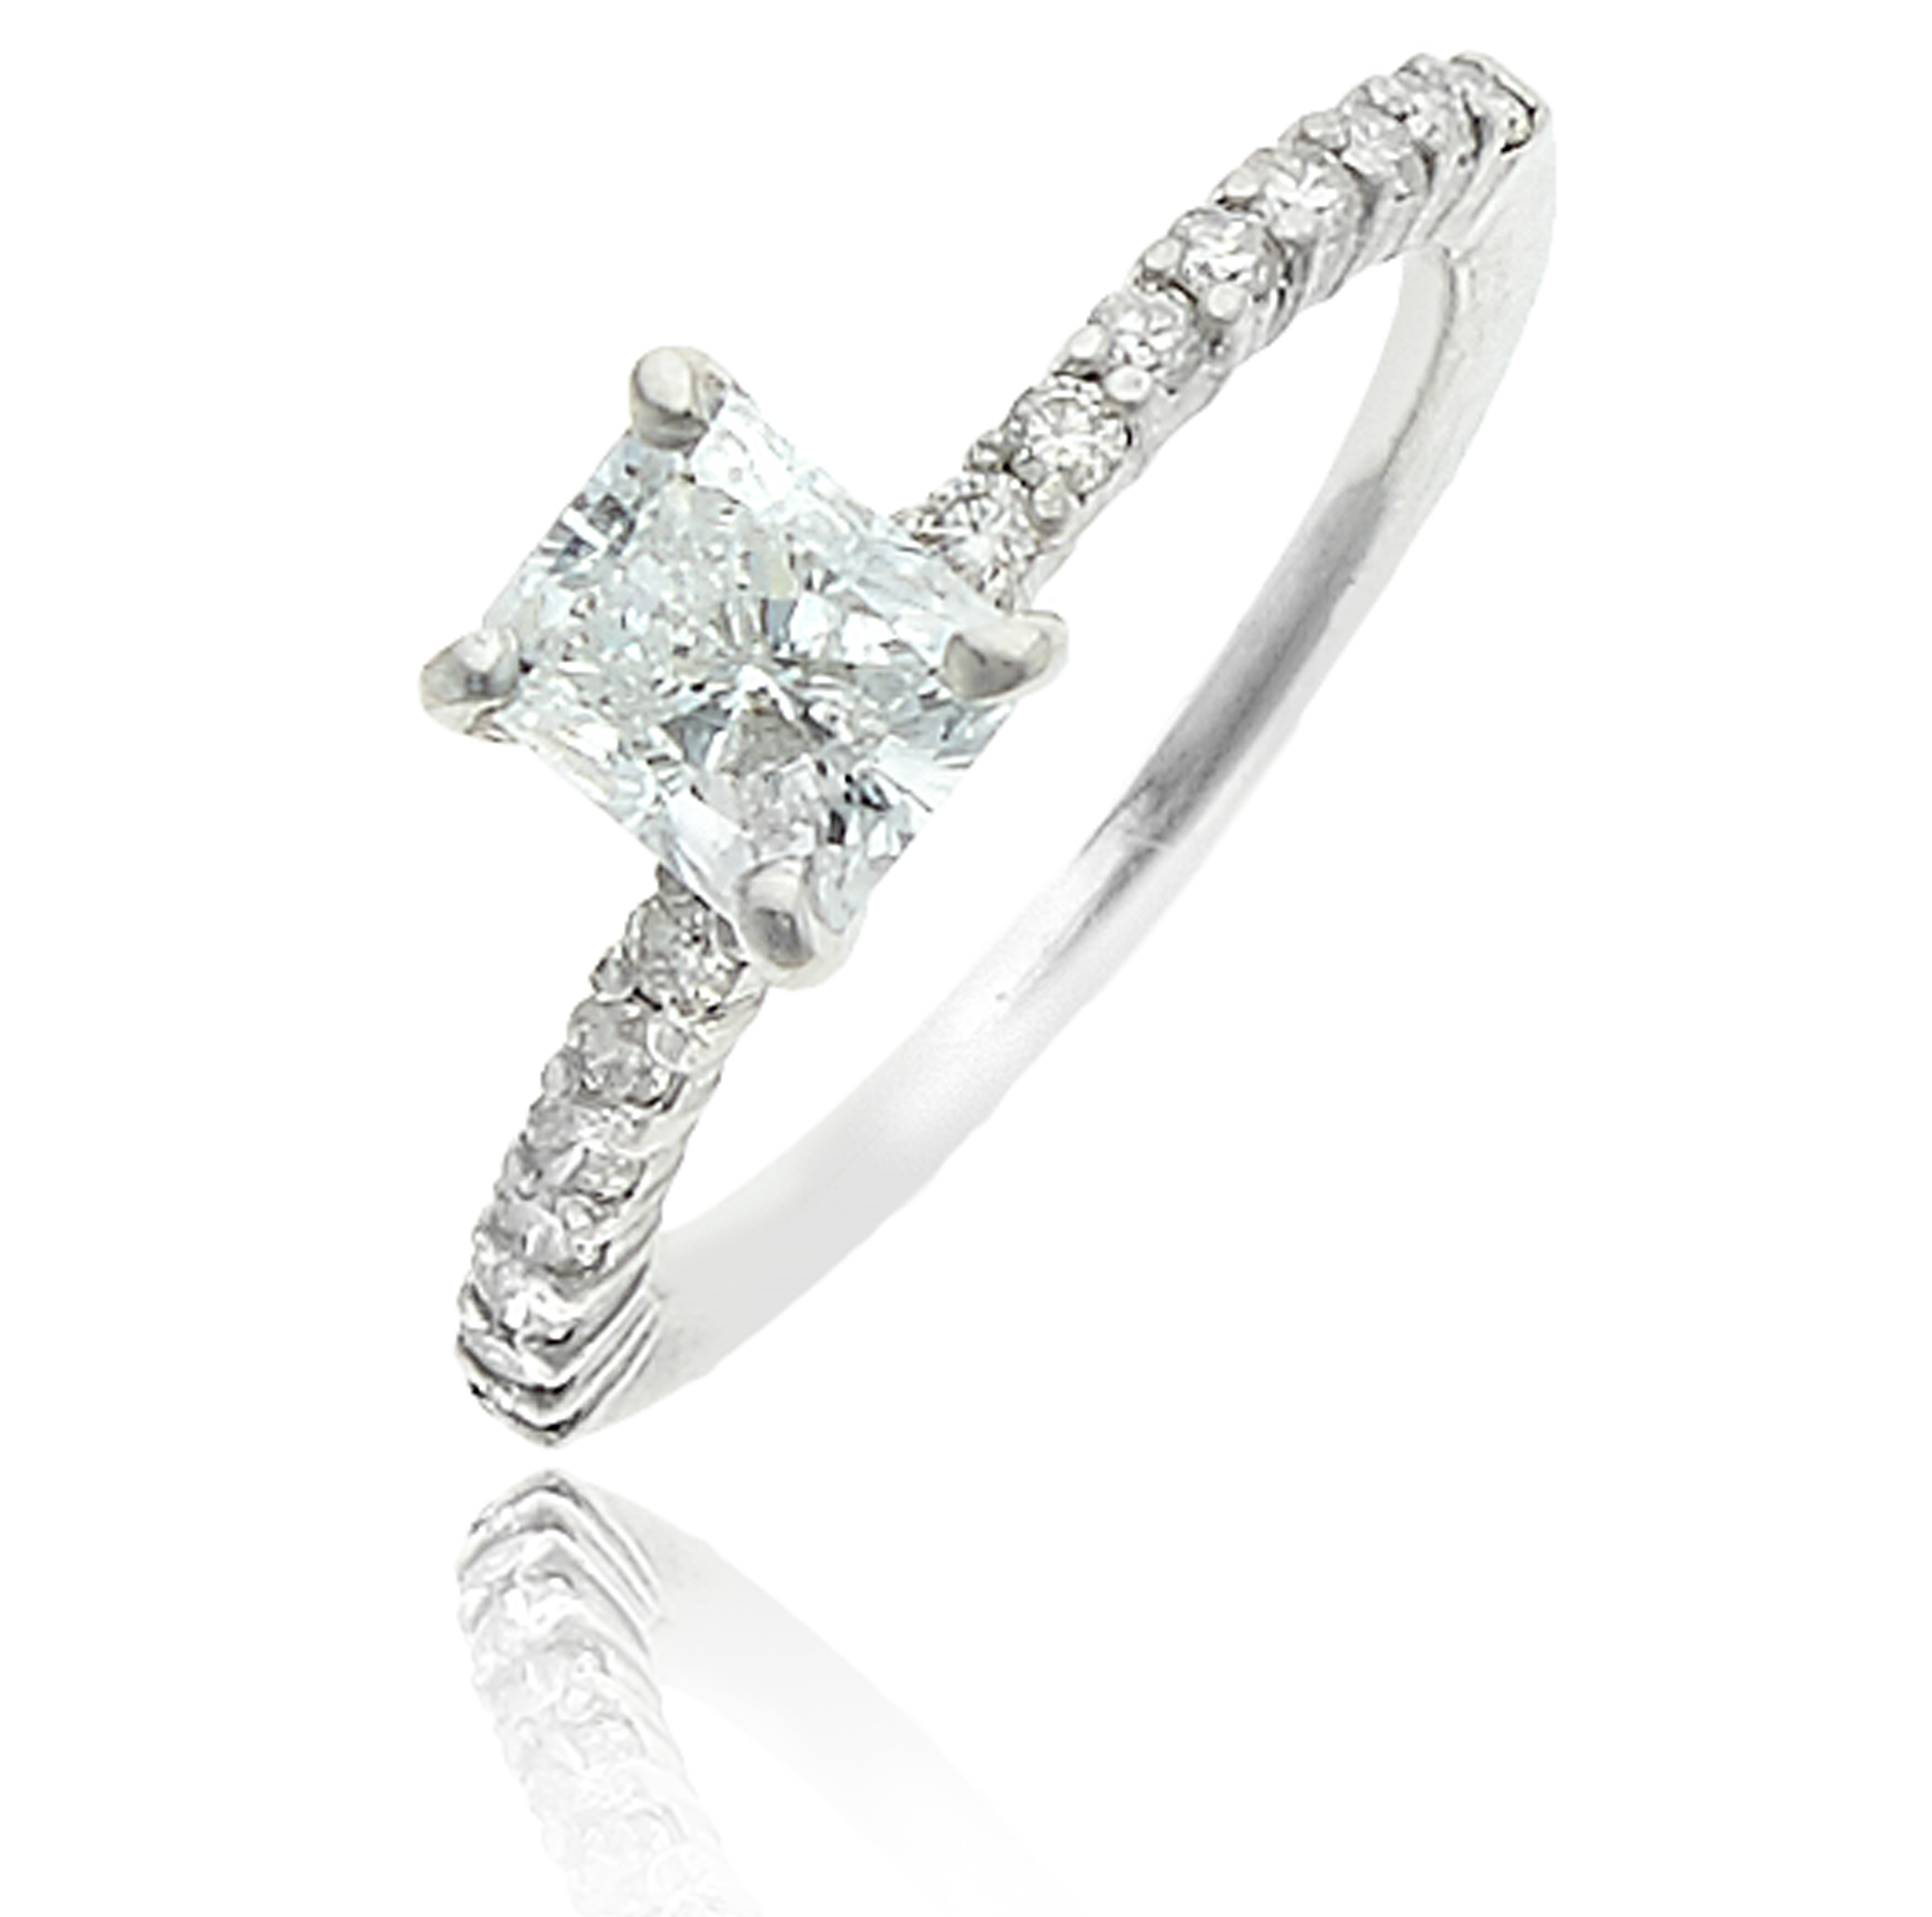 under weddings ring gemesis engagement gallery diamond dollars rings jewellery glamour main princess cut